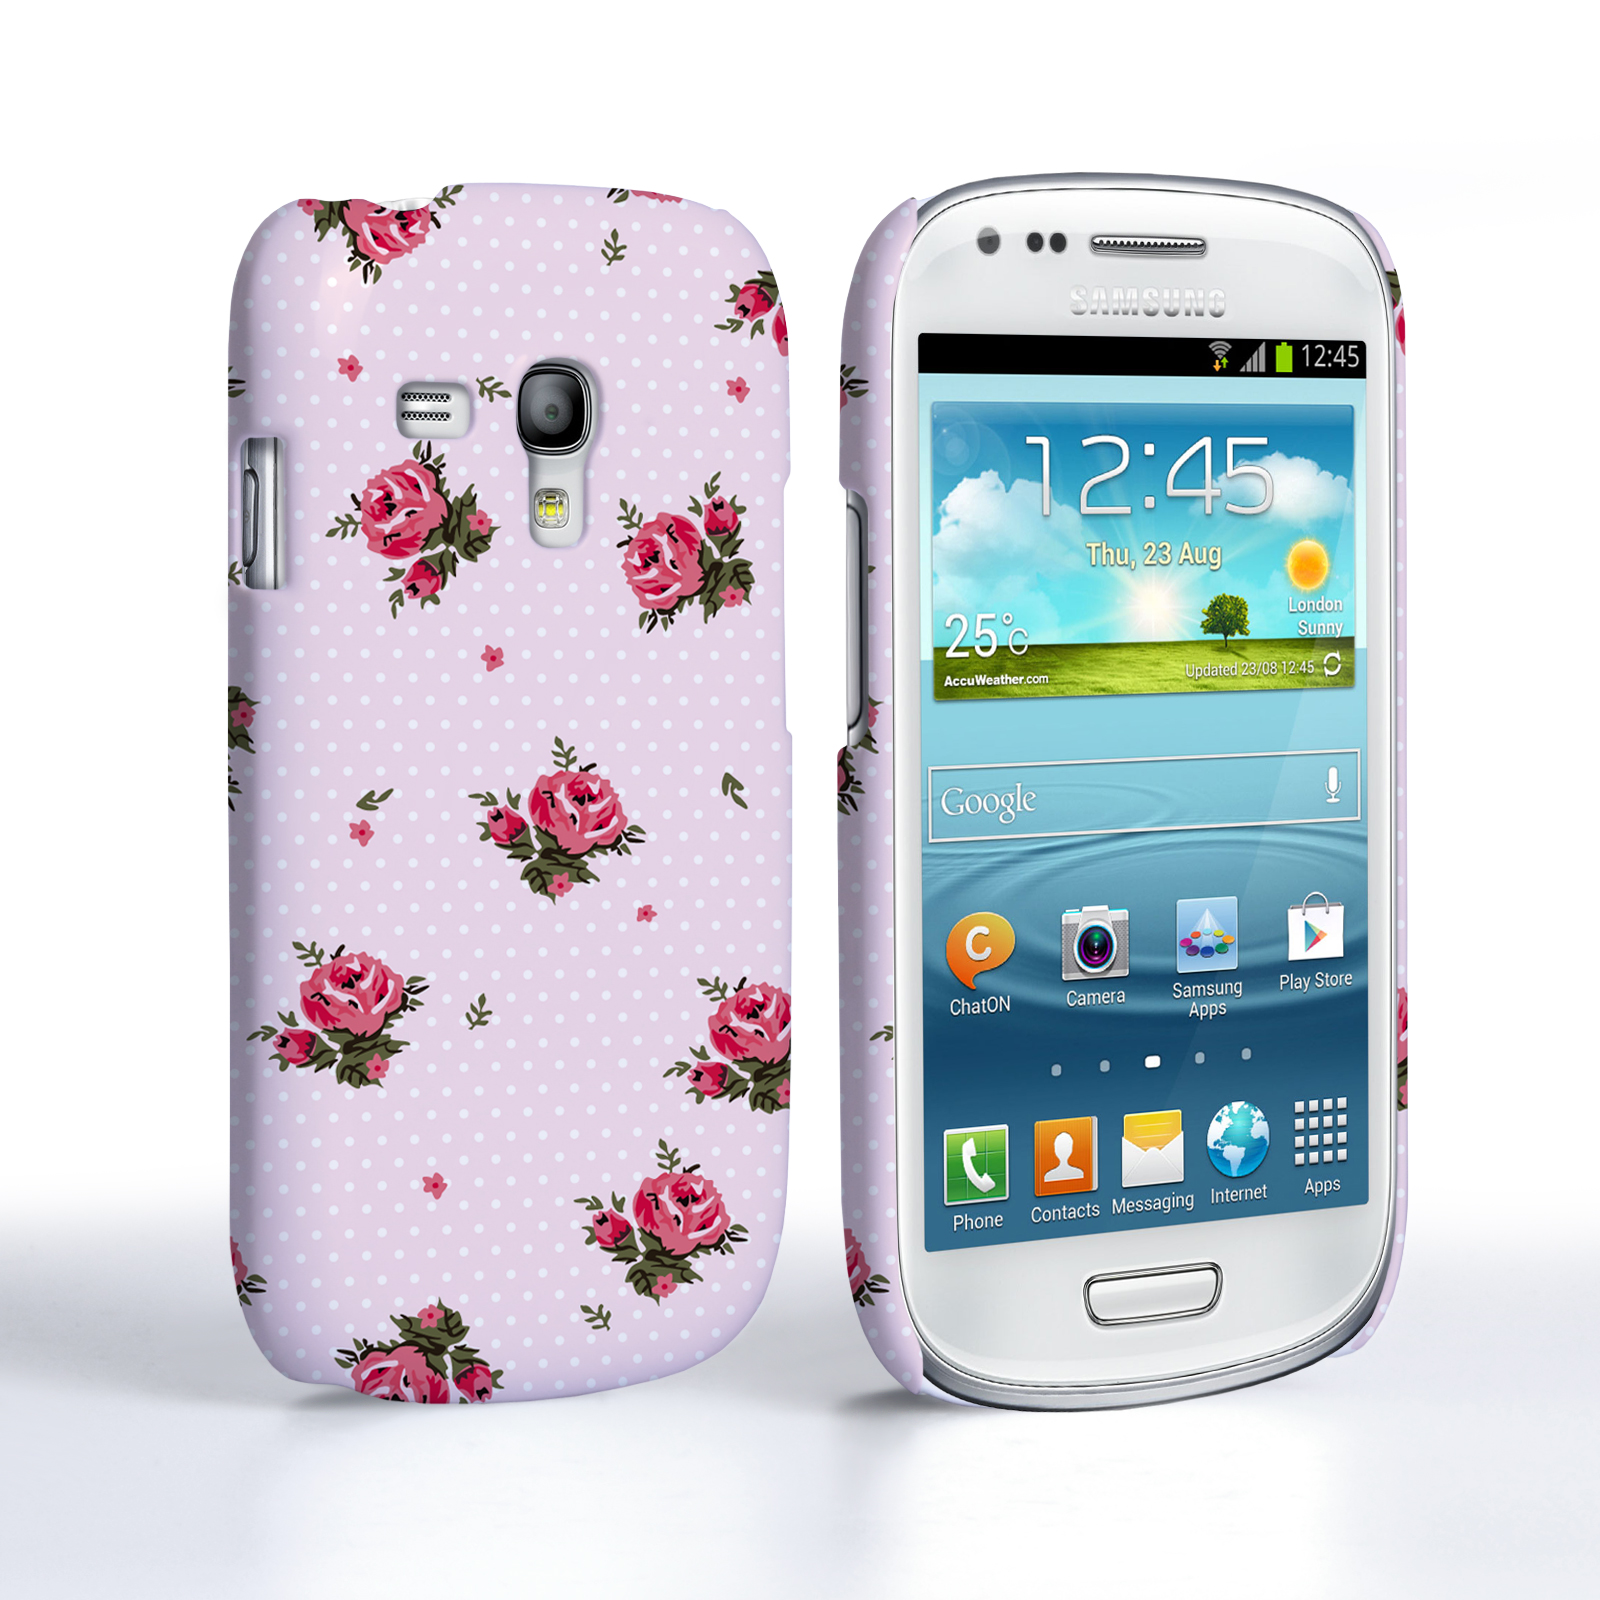 Home Phone Cases Samsung Samsung Galaxy S3 Mini Cases Caseflex 1600x1600